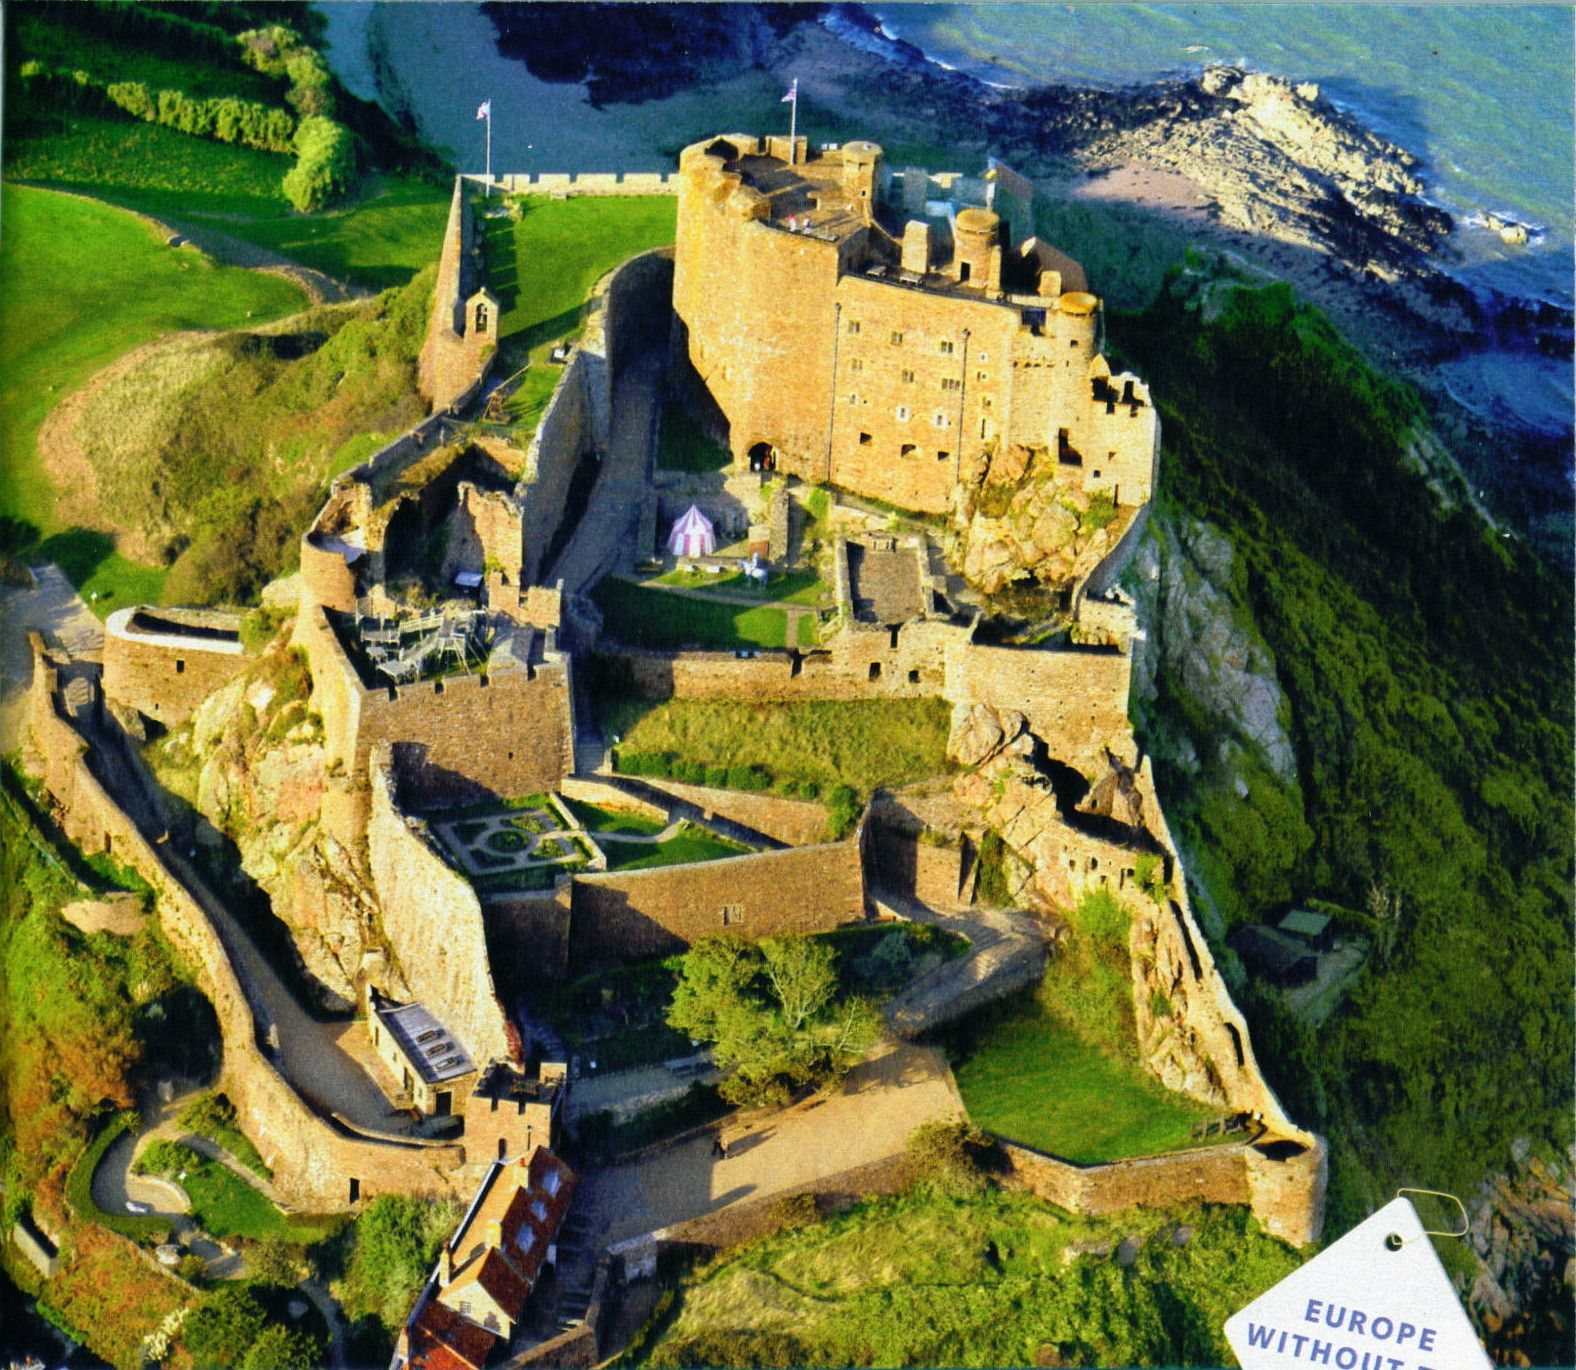 Aerial view of vast, complex Mediaeval castle with lots of criss-crossing ...